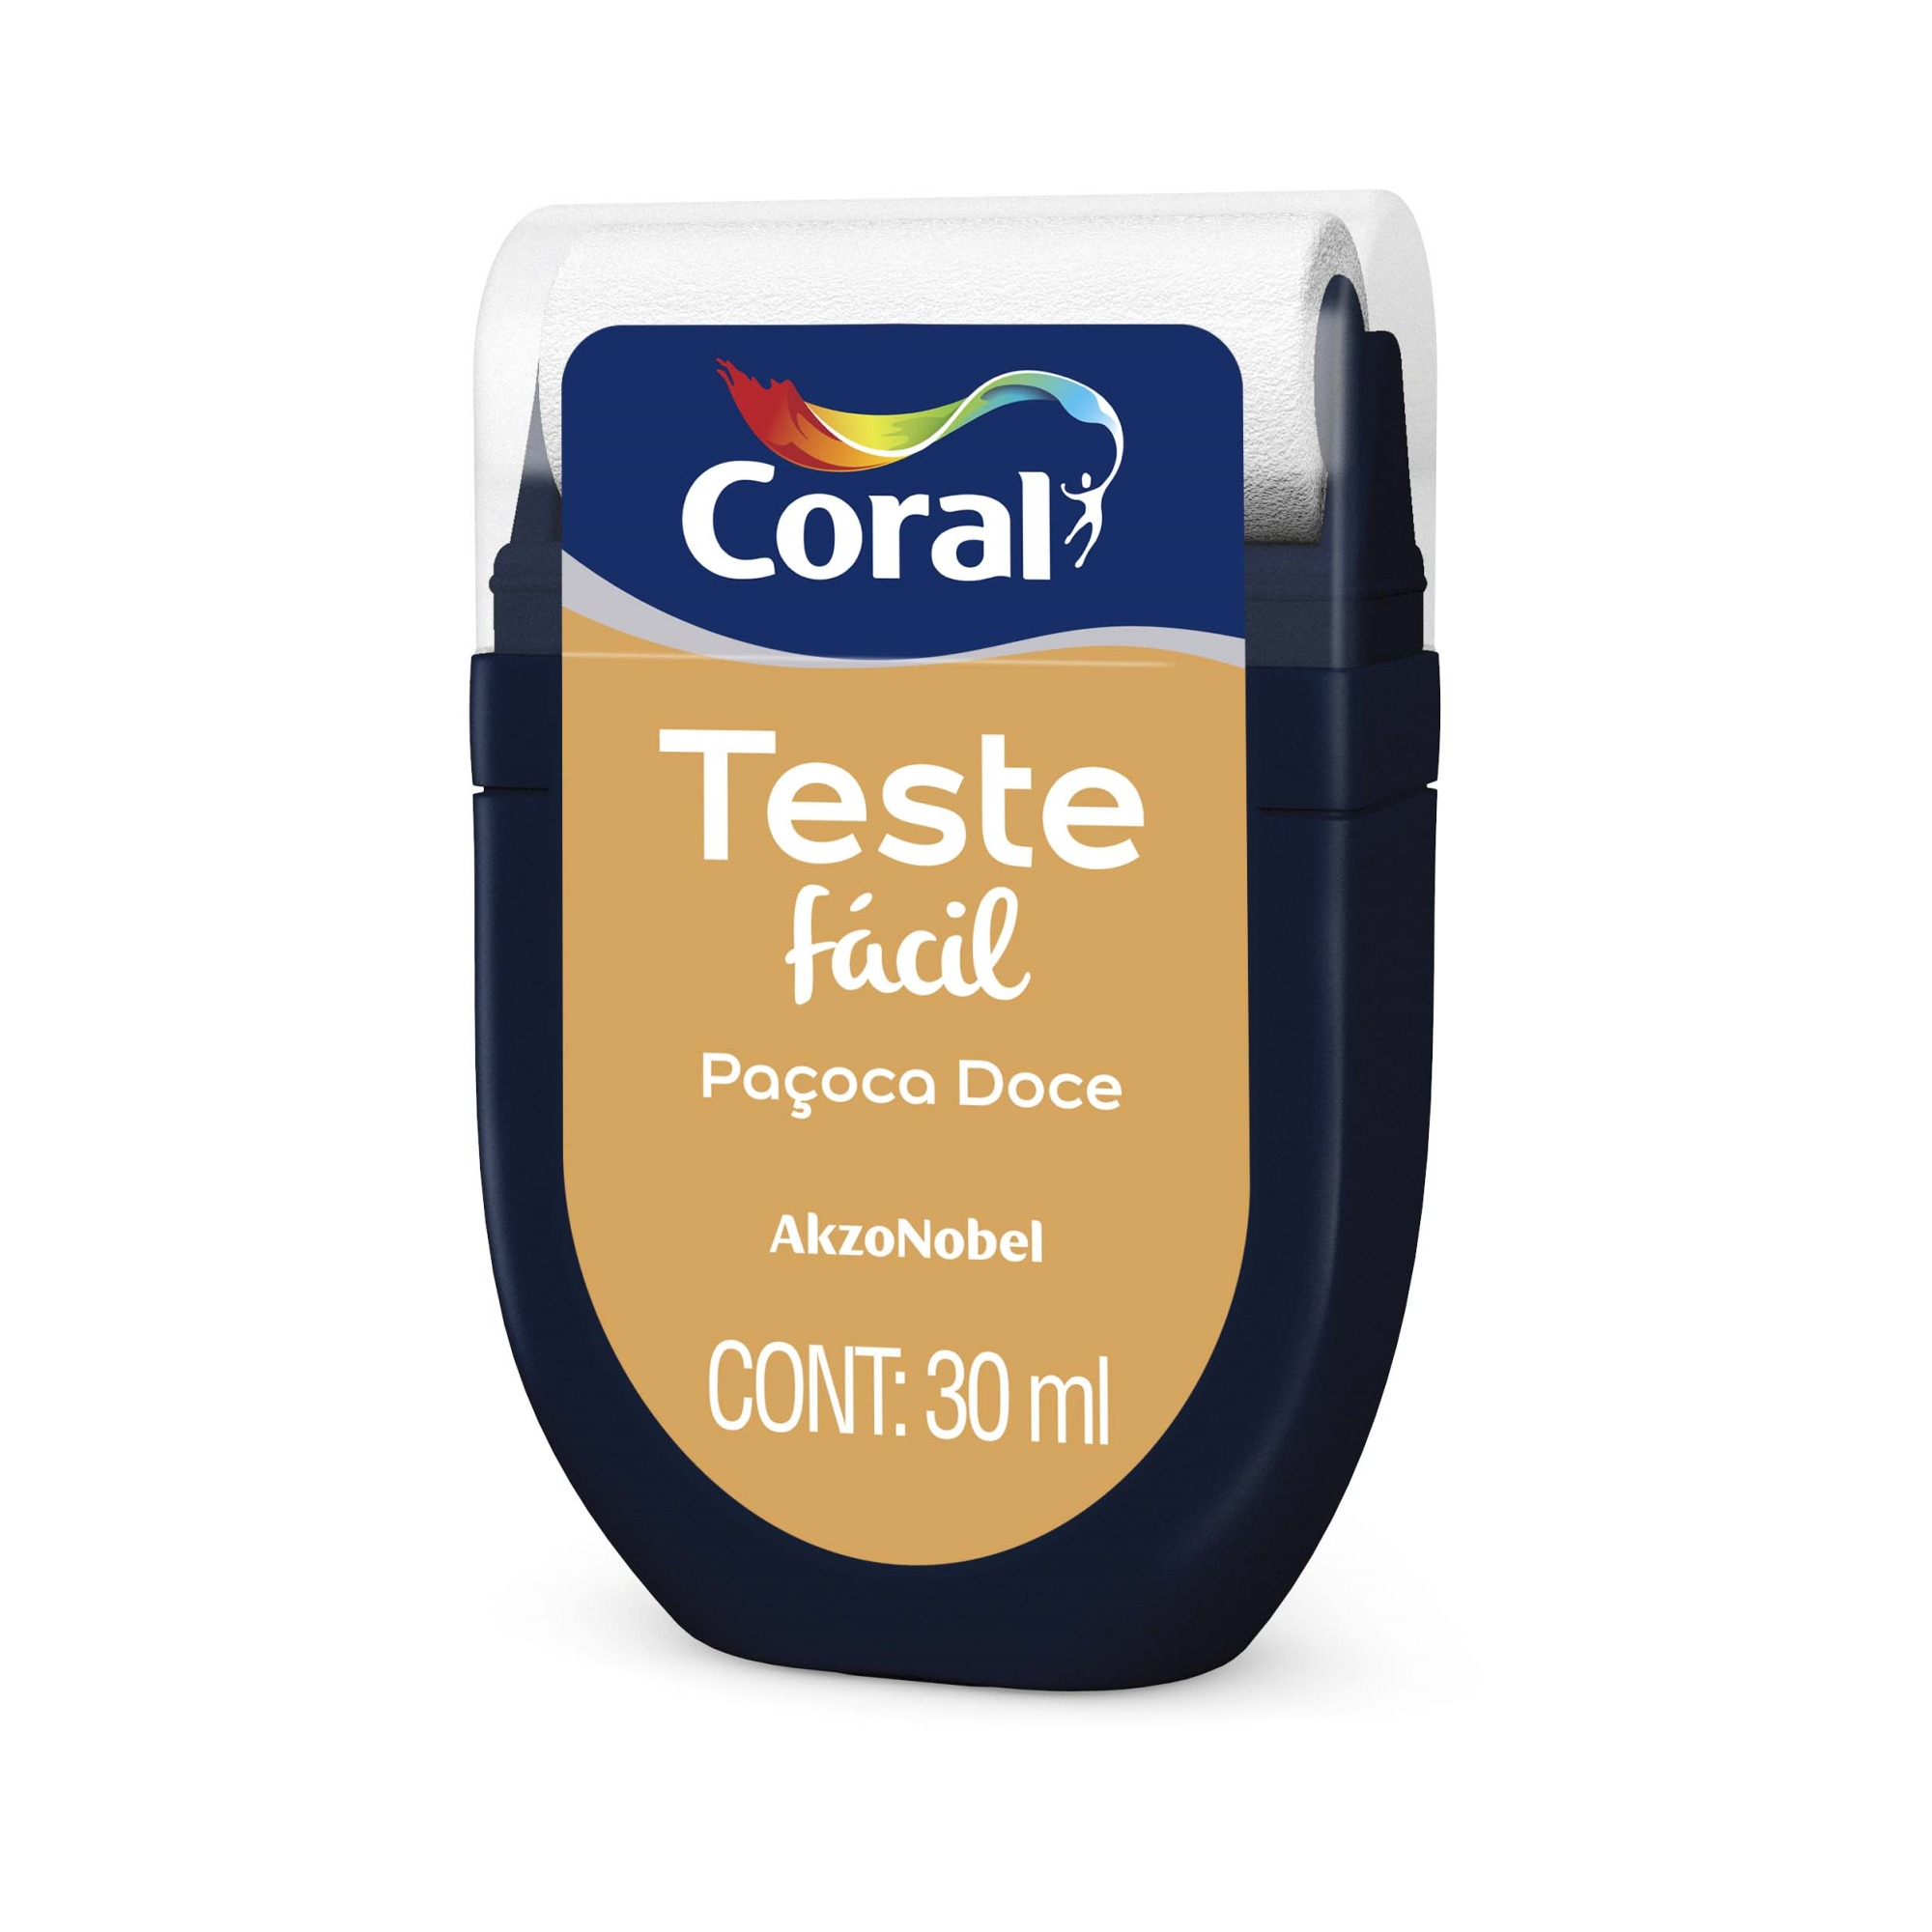 Teste Facil 30ml Pacoca Doce - Coral